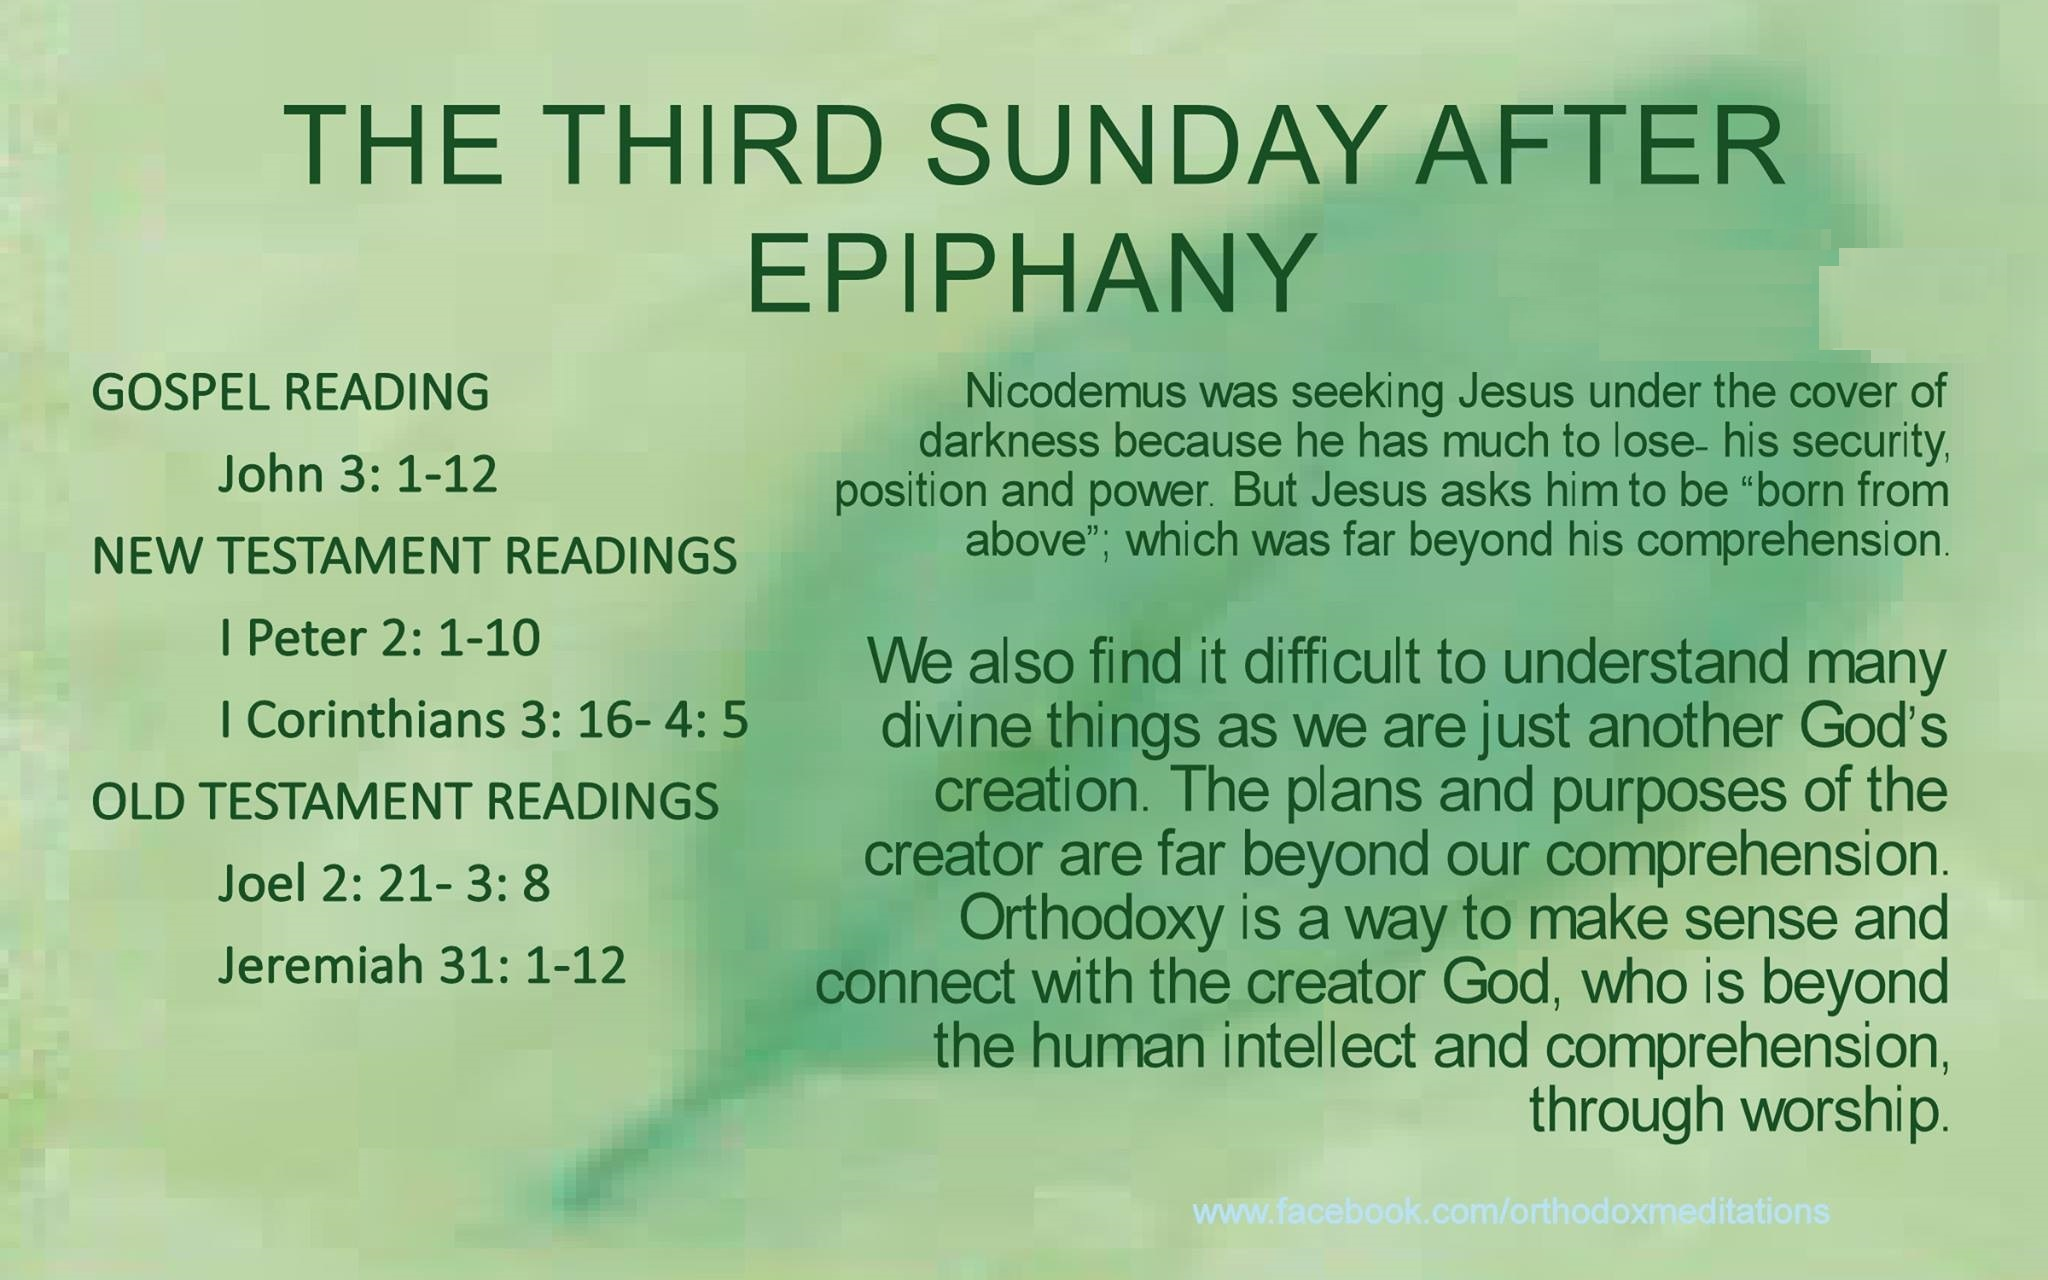 3rd-sunday-after-ephiphany